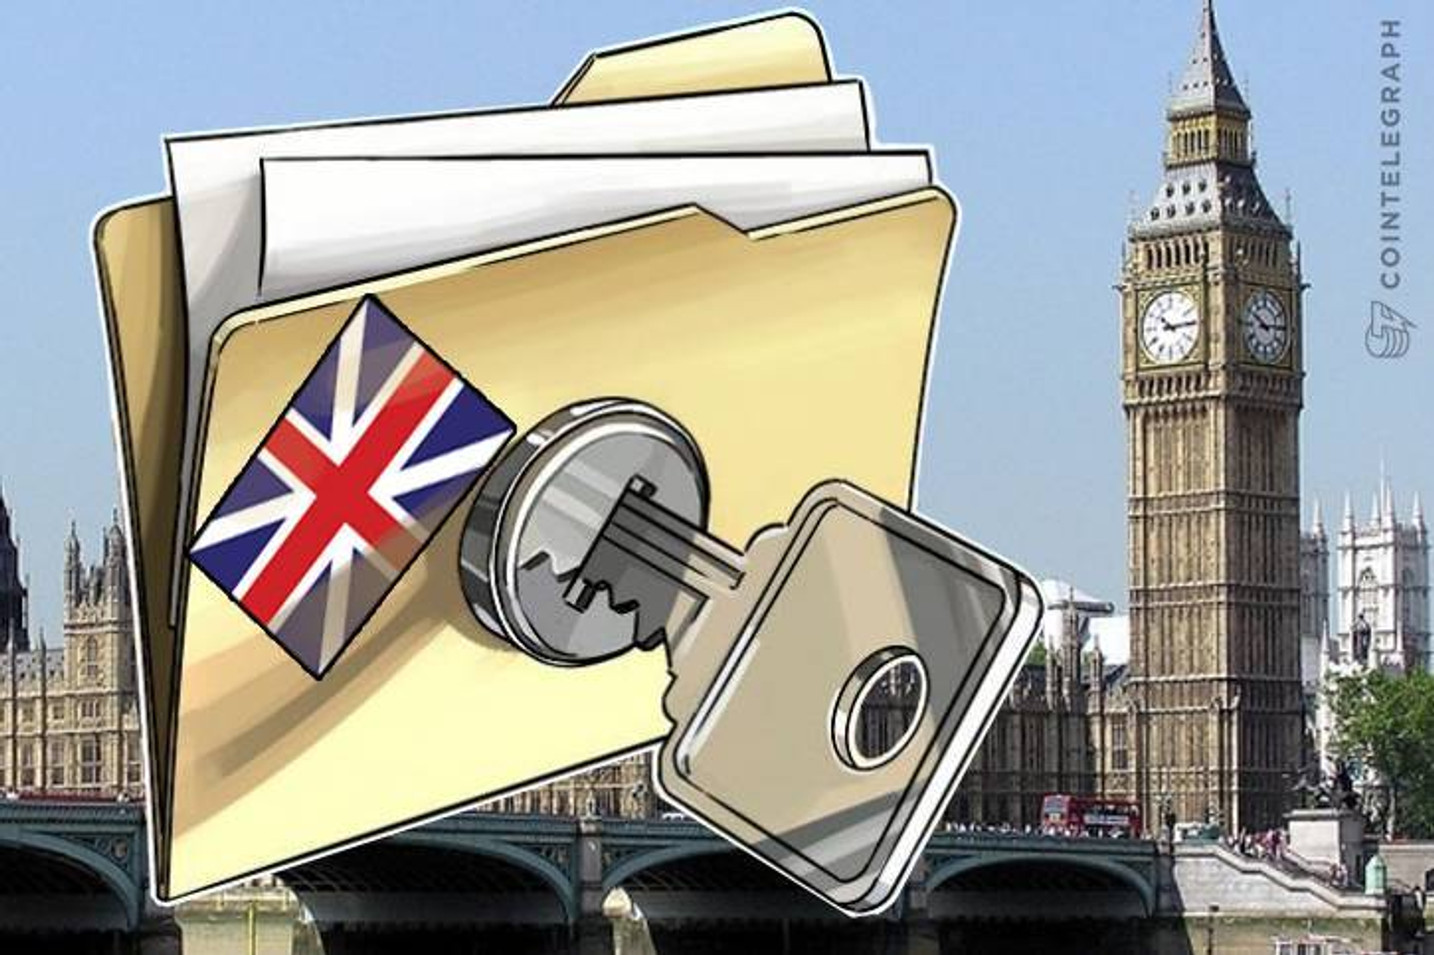 Bank of England Issues Working Paper on Central Bank Digital Currencies